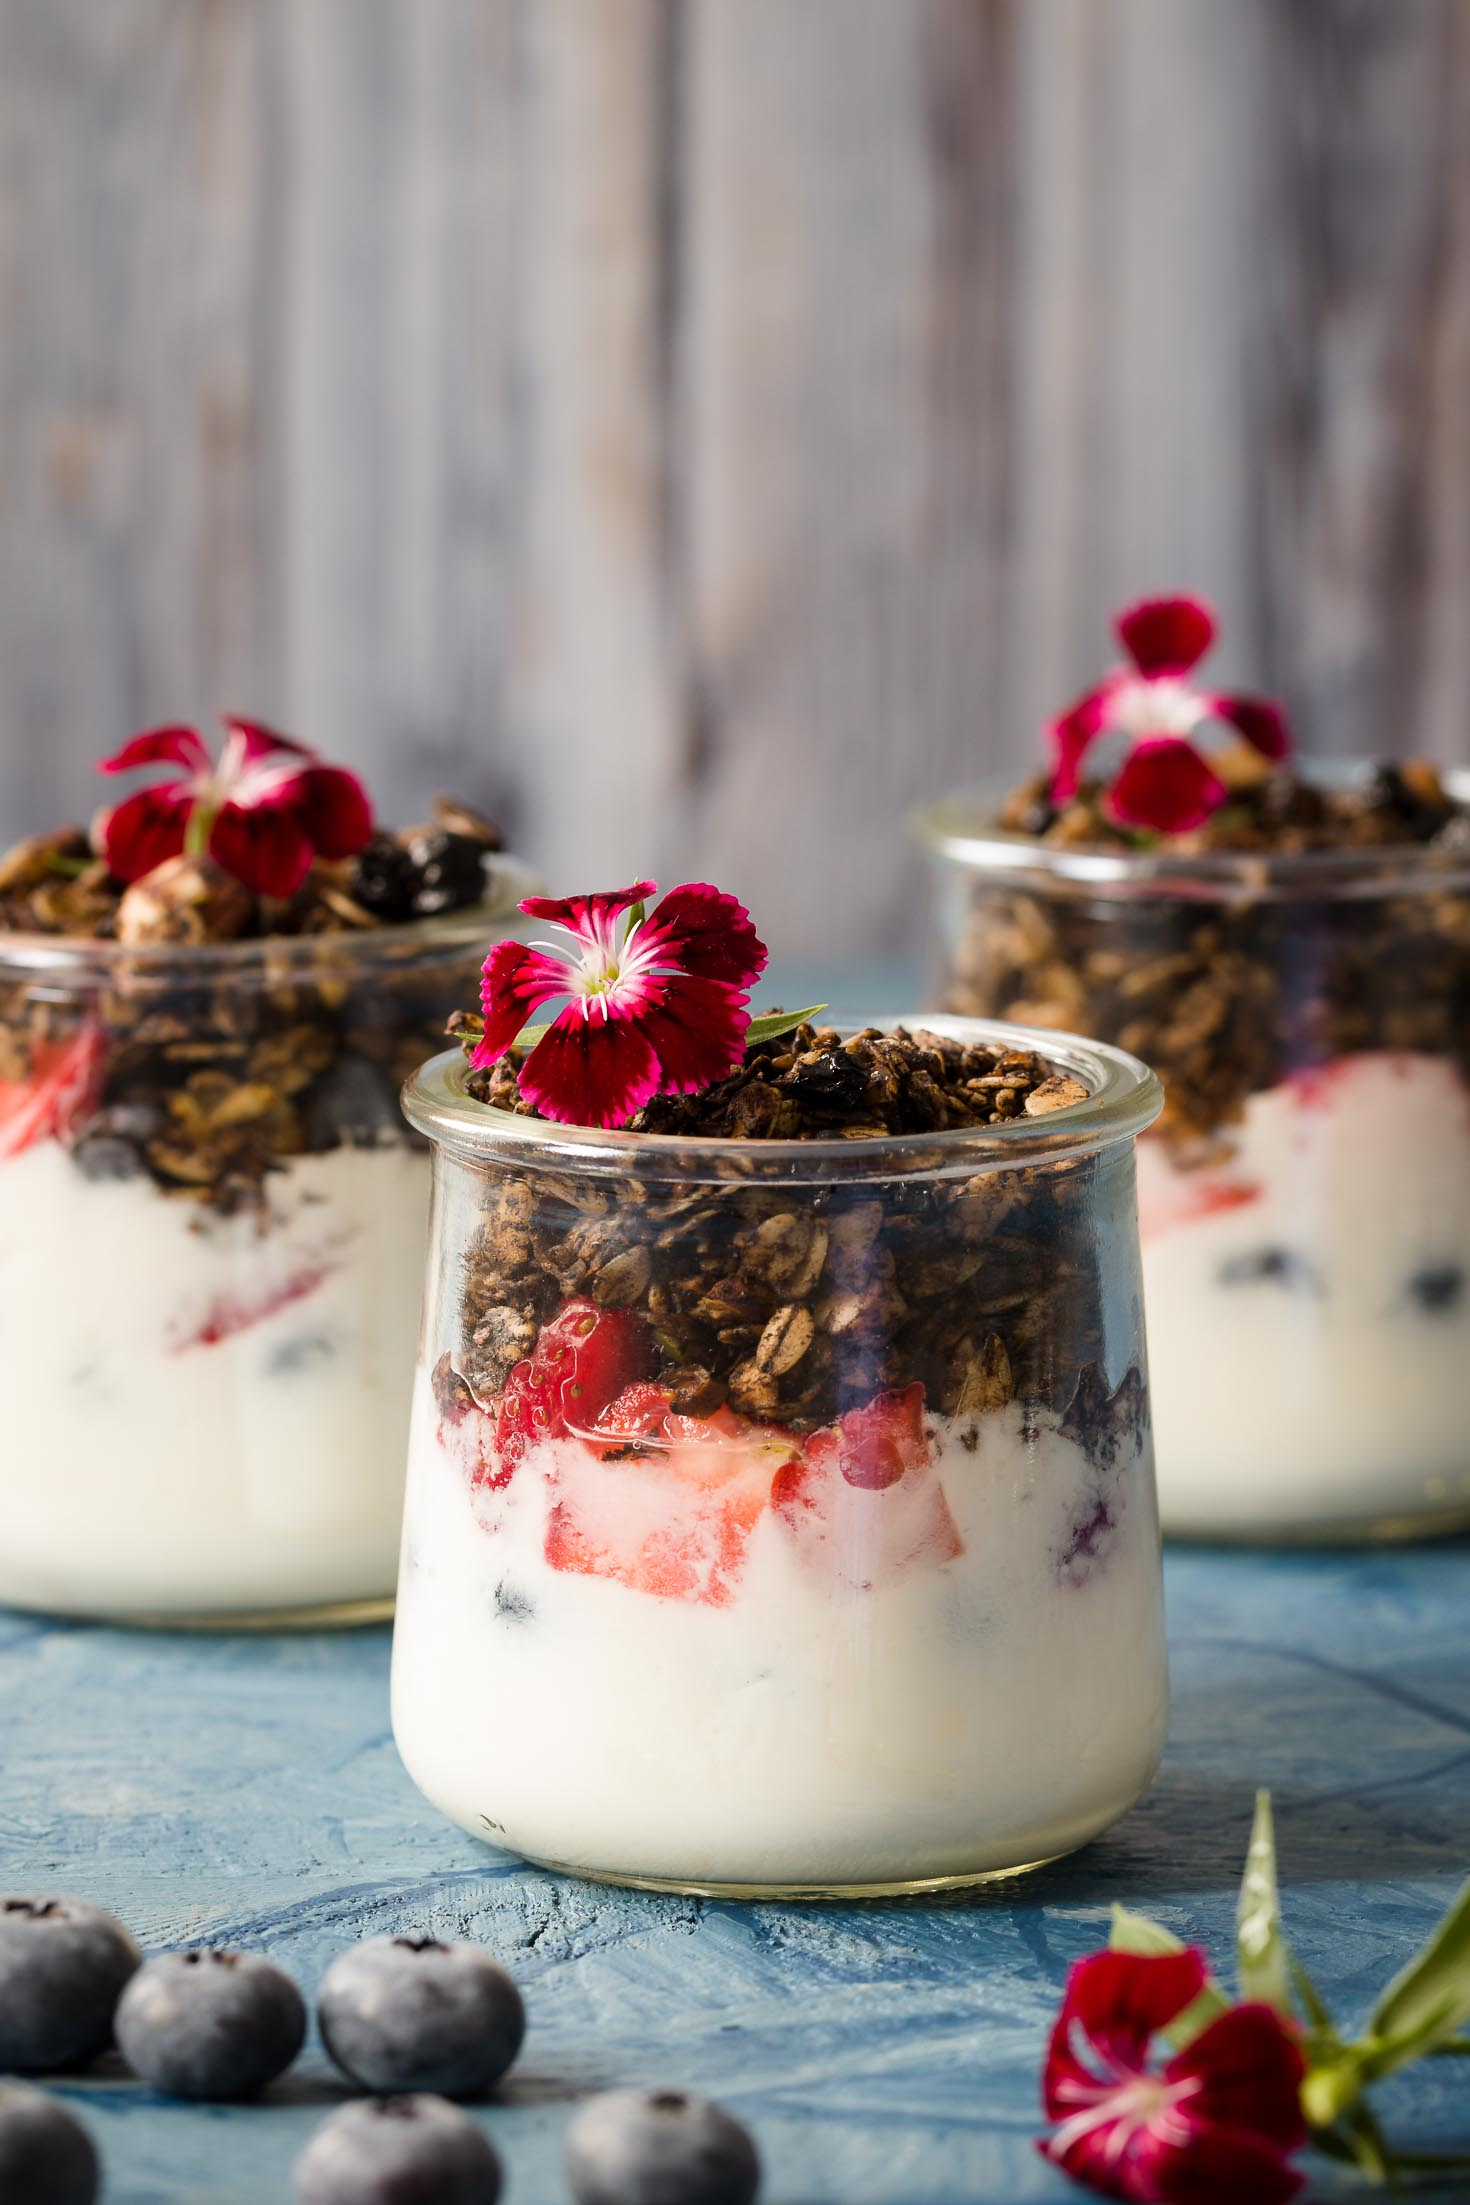 Pistachio Chocolate Granola-front view-three jars of parfait granola-yogurt blueberries and granola garnished with red dianthus flower